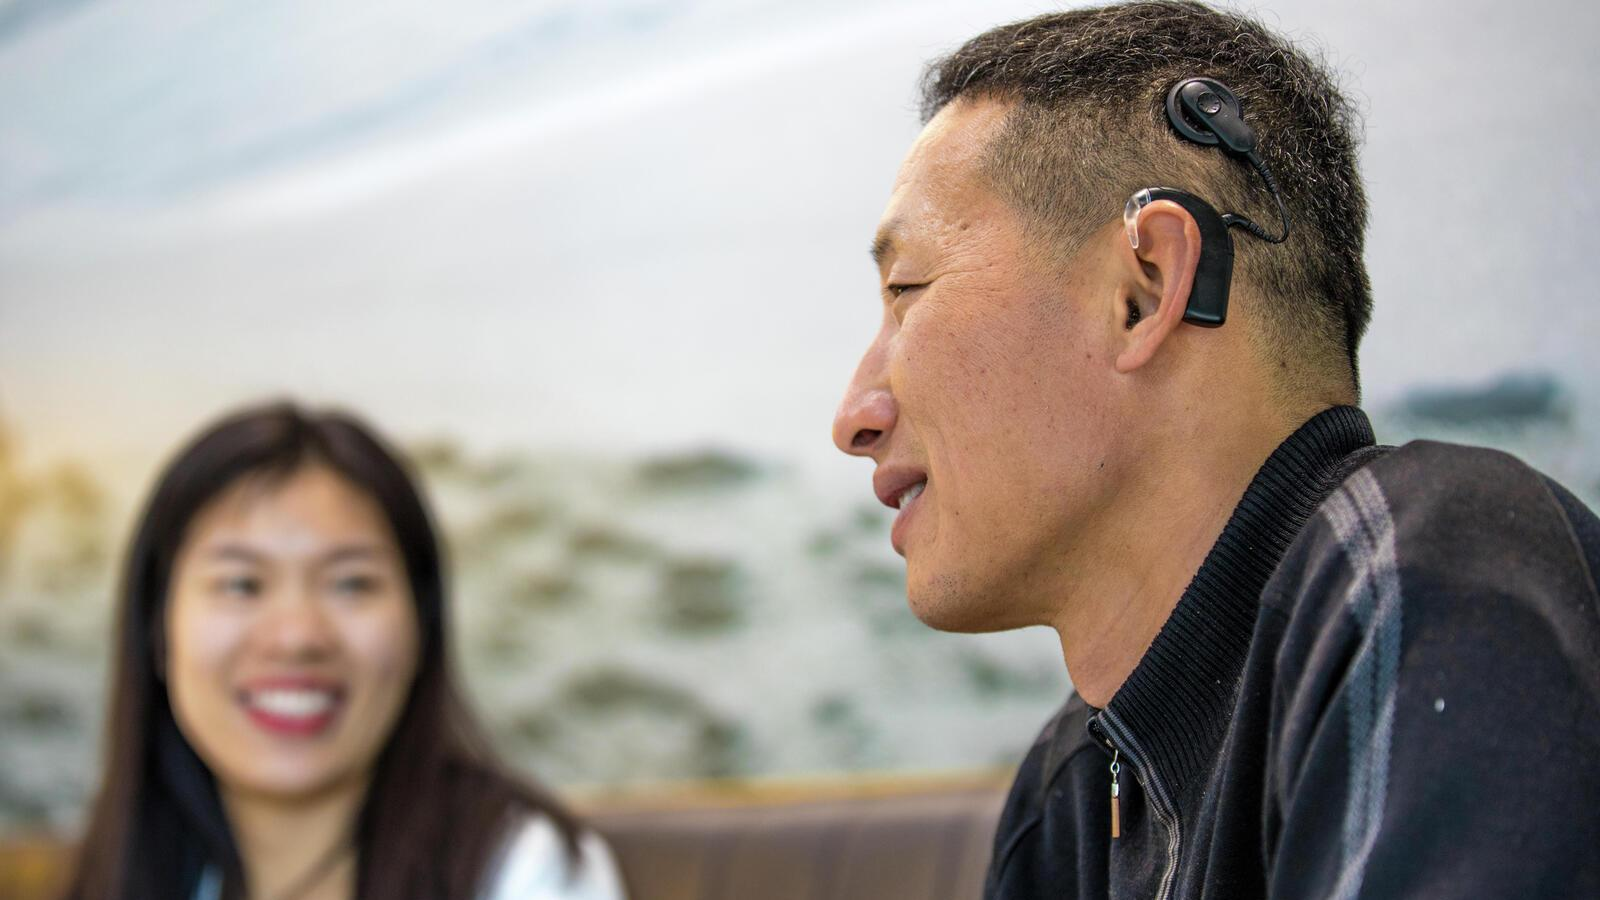 A mother and father sit on a couch with son, wearing a Cochlear implant, and listen to him read